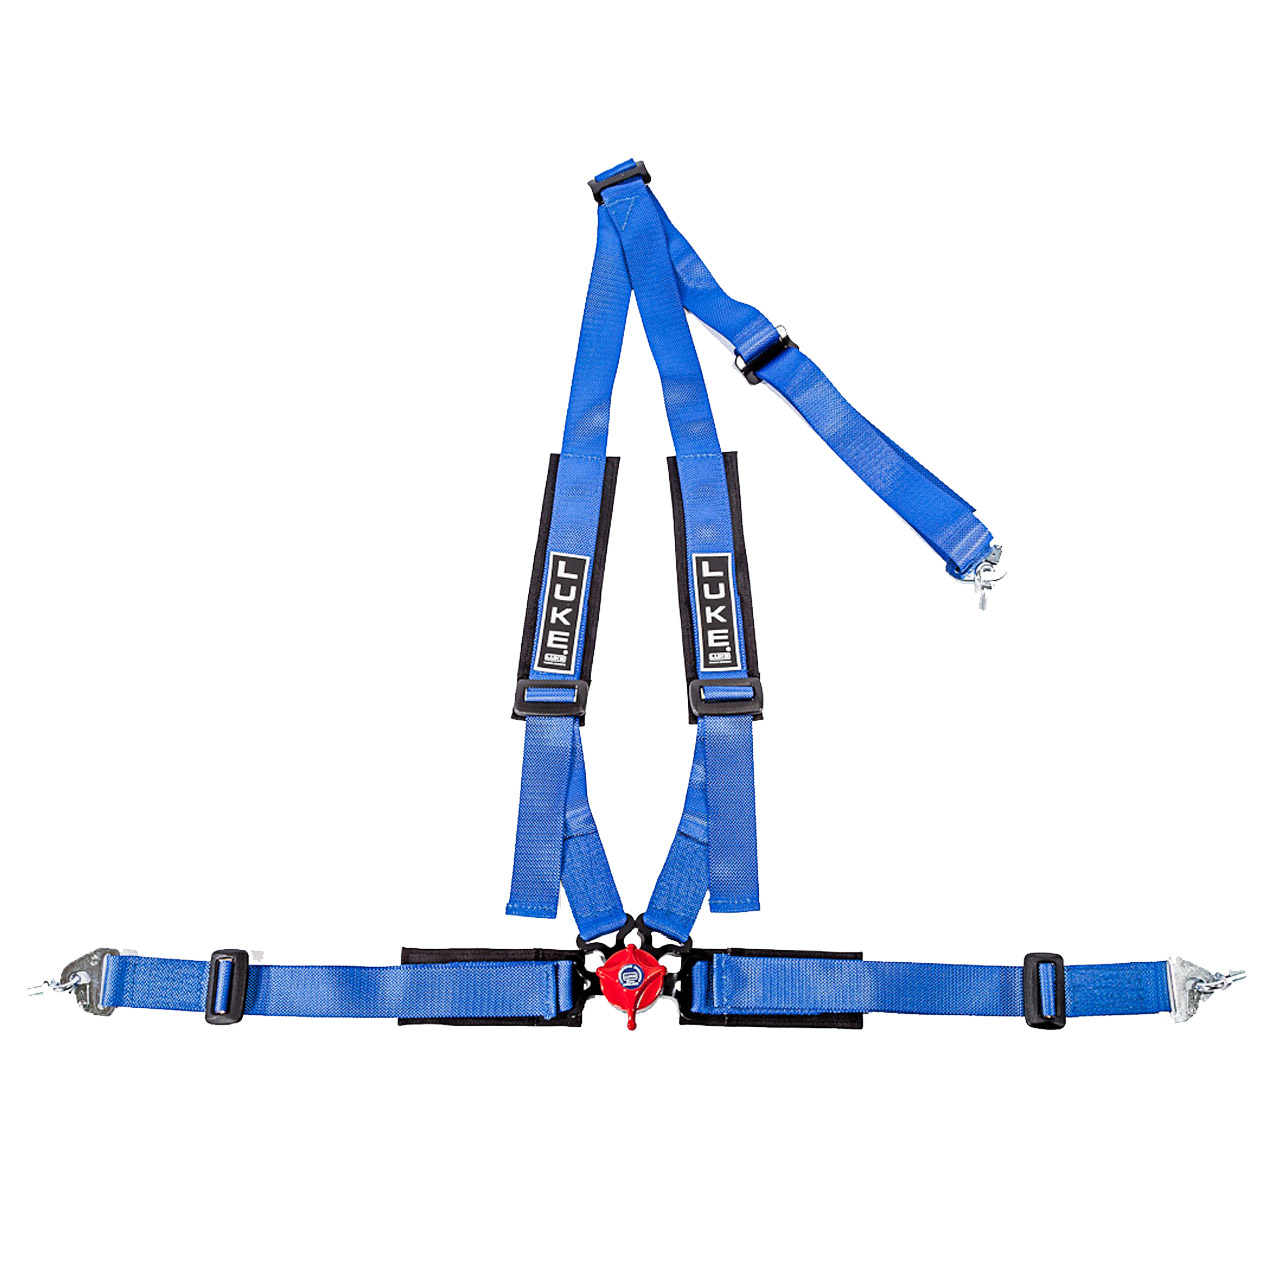 LUKE Professional 4 Point Racing Harness in Sky Blue